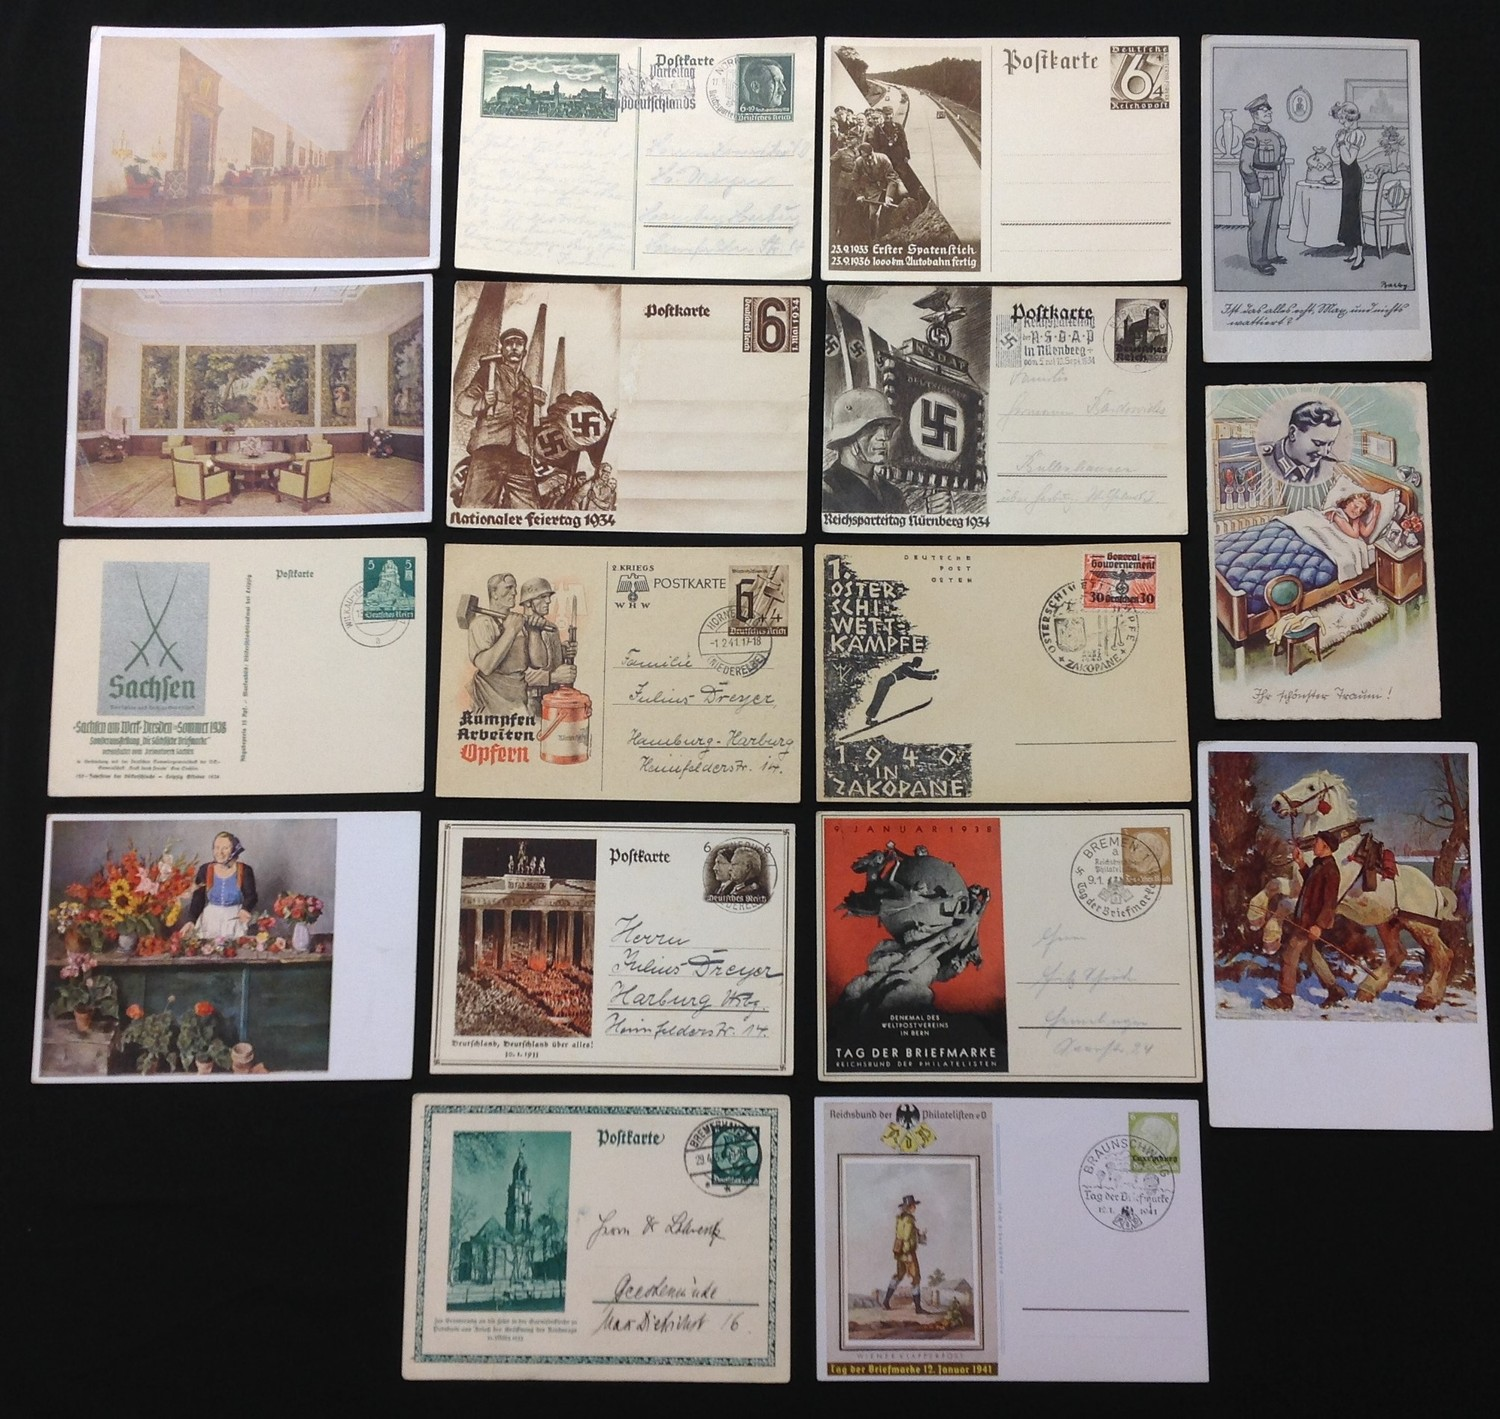 WW2 Third Reich Postcards, 17 in total, eleven of which have been filled in and posted. Political